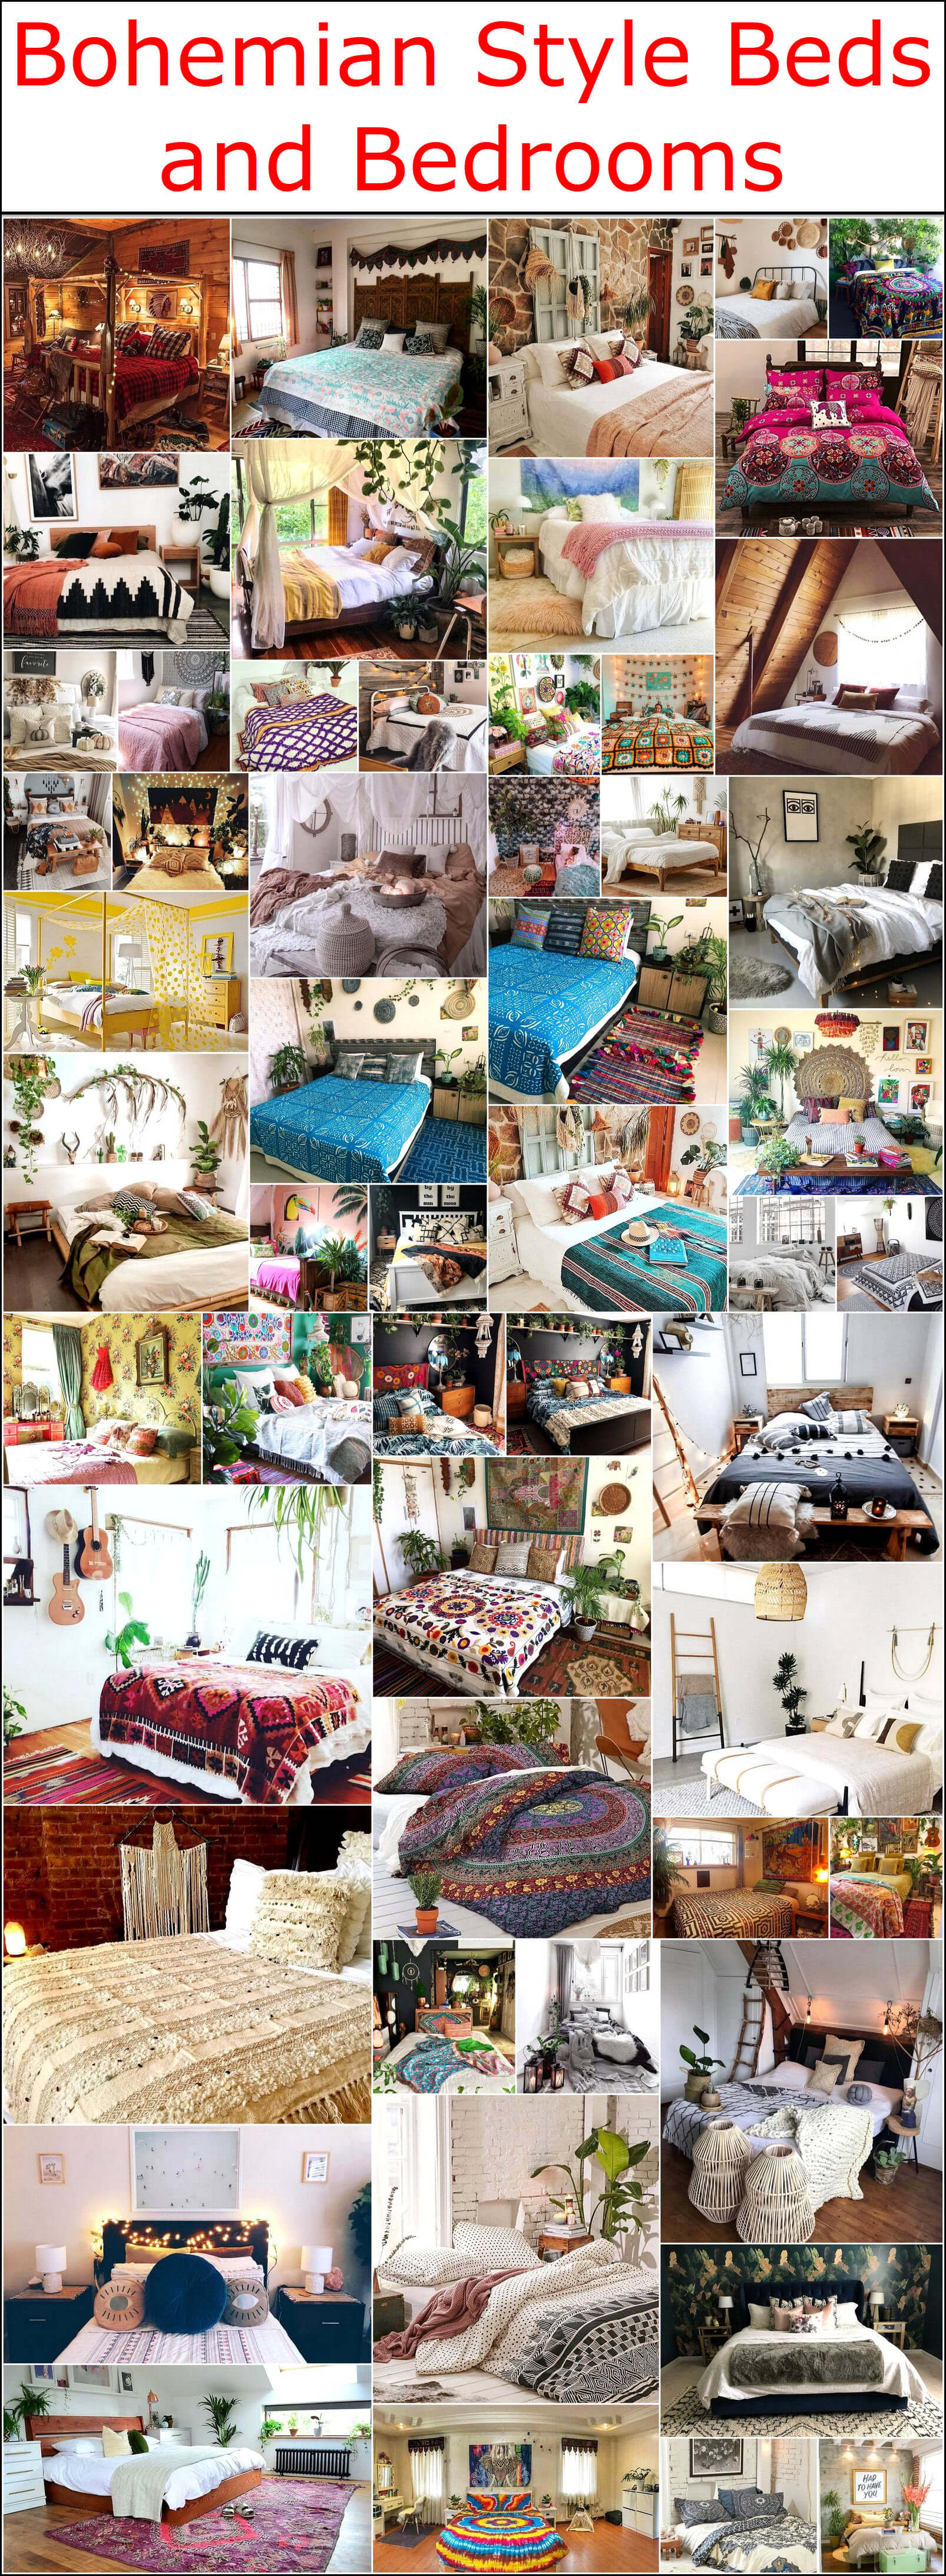 Bohemian Style Beds and Bedrooms